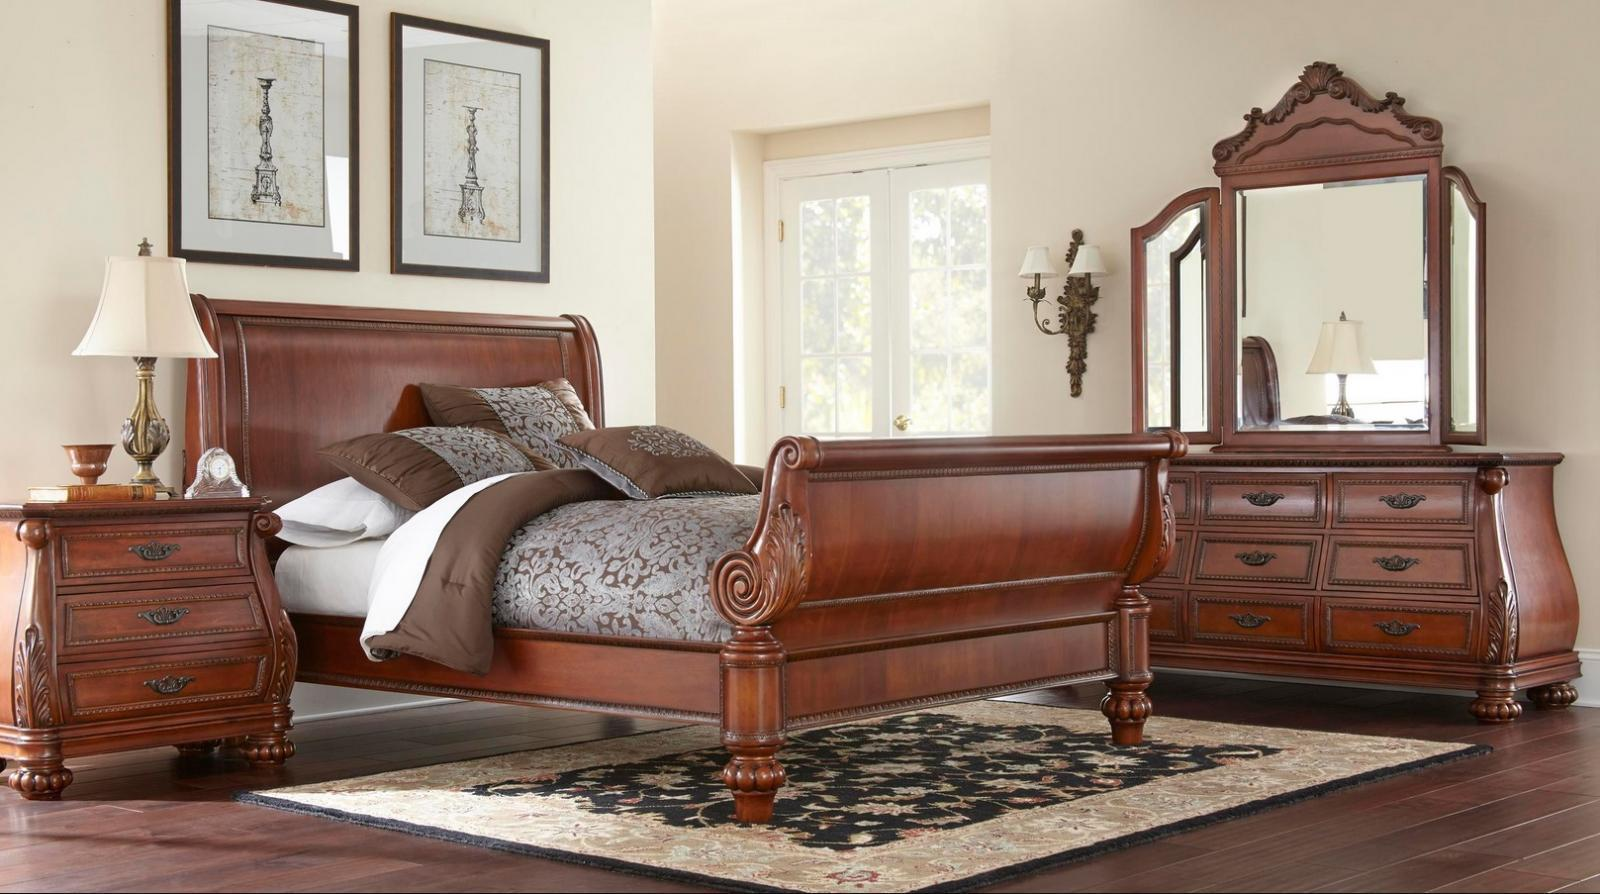 7021Q Sierra Bed Queen Classic Cherry Traditional Brown Wood Platform by MYCO